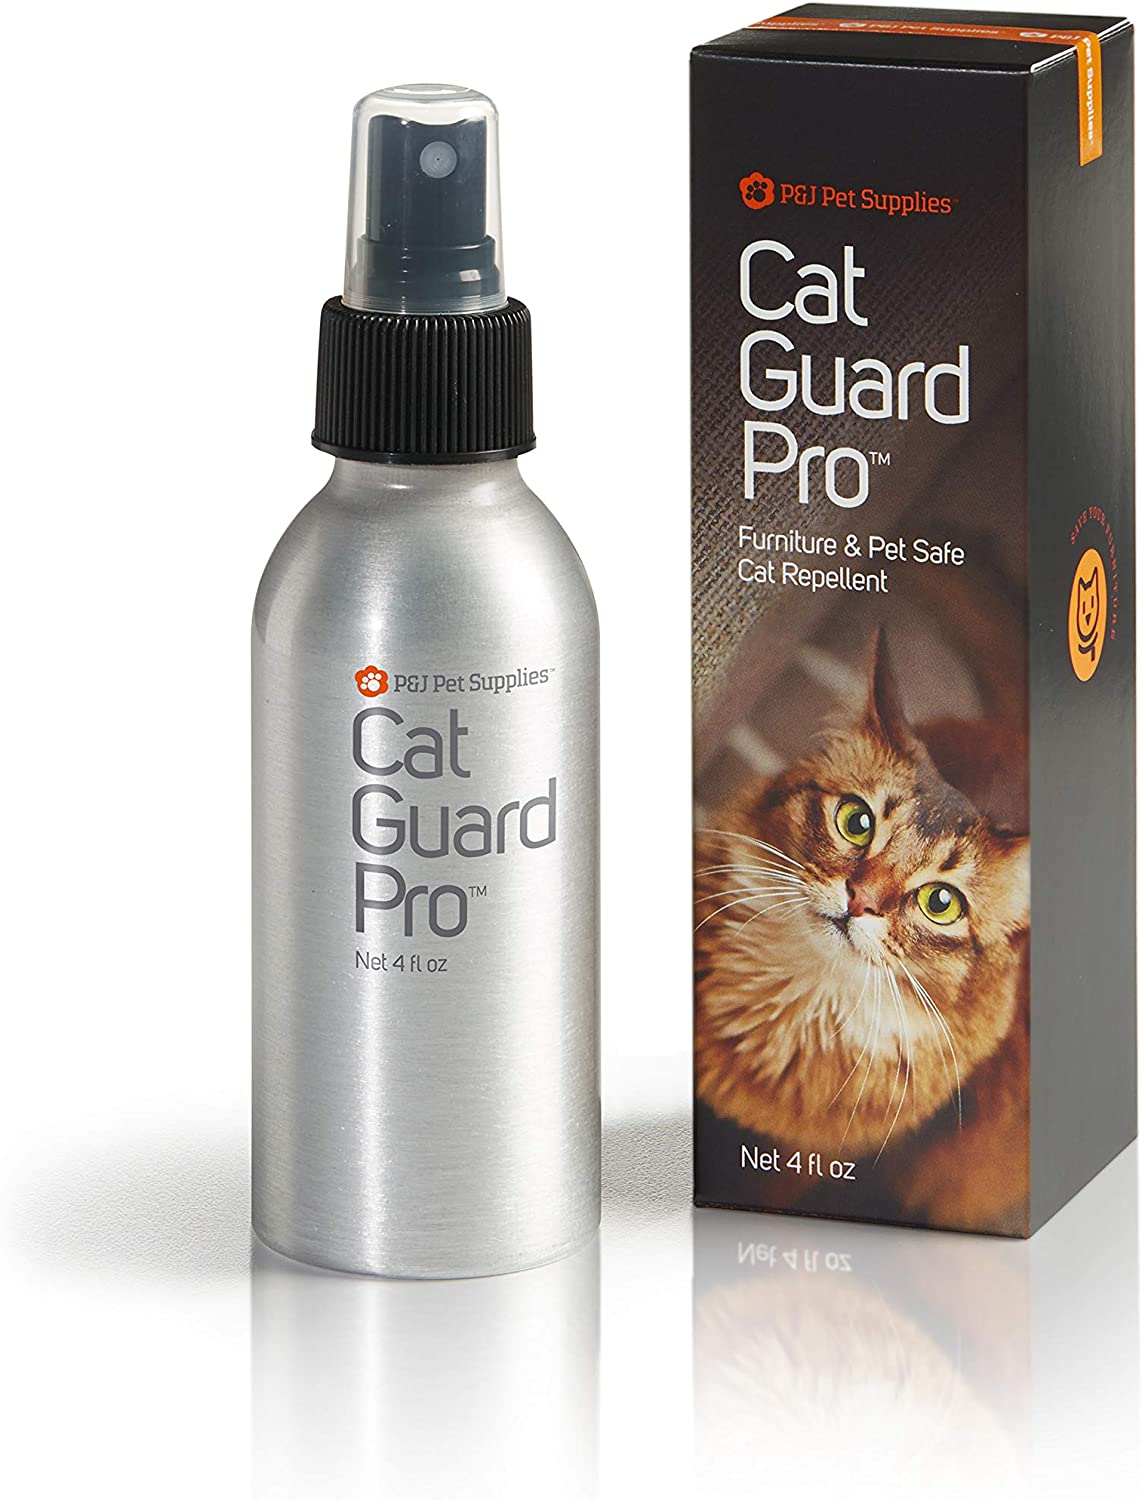 Cat Guard Pro Pet Safe Furniture Cat Repellent